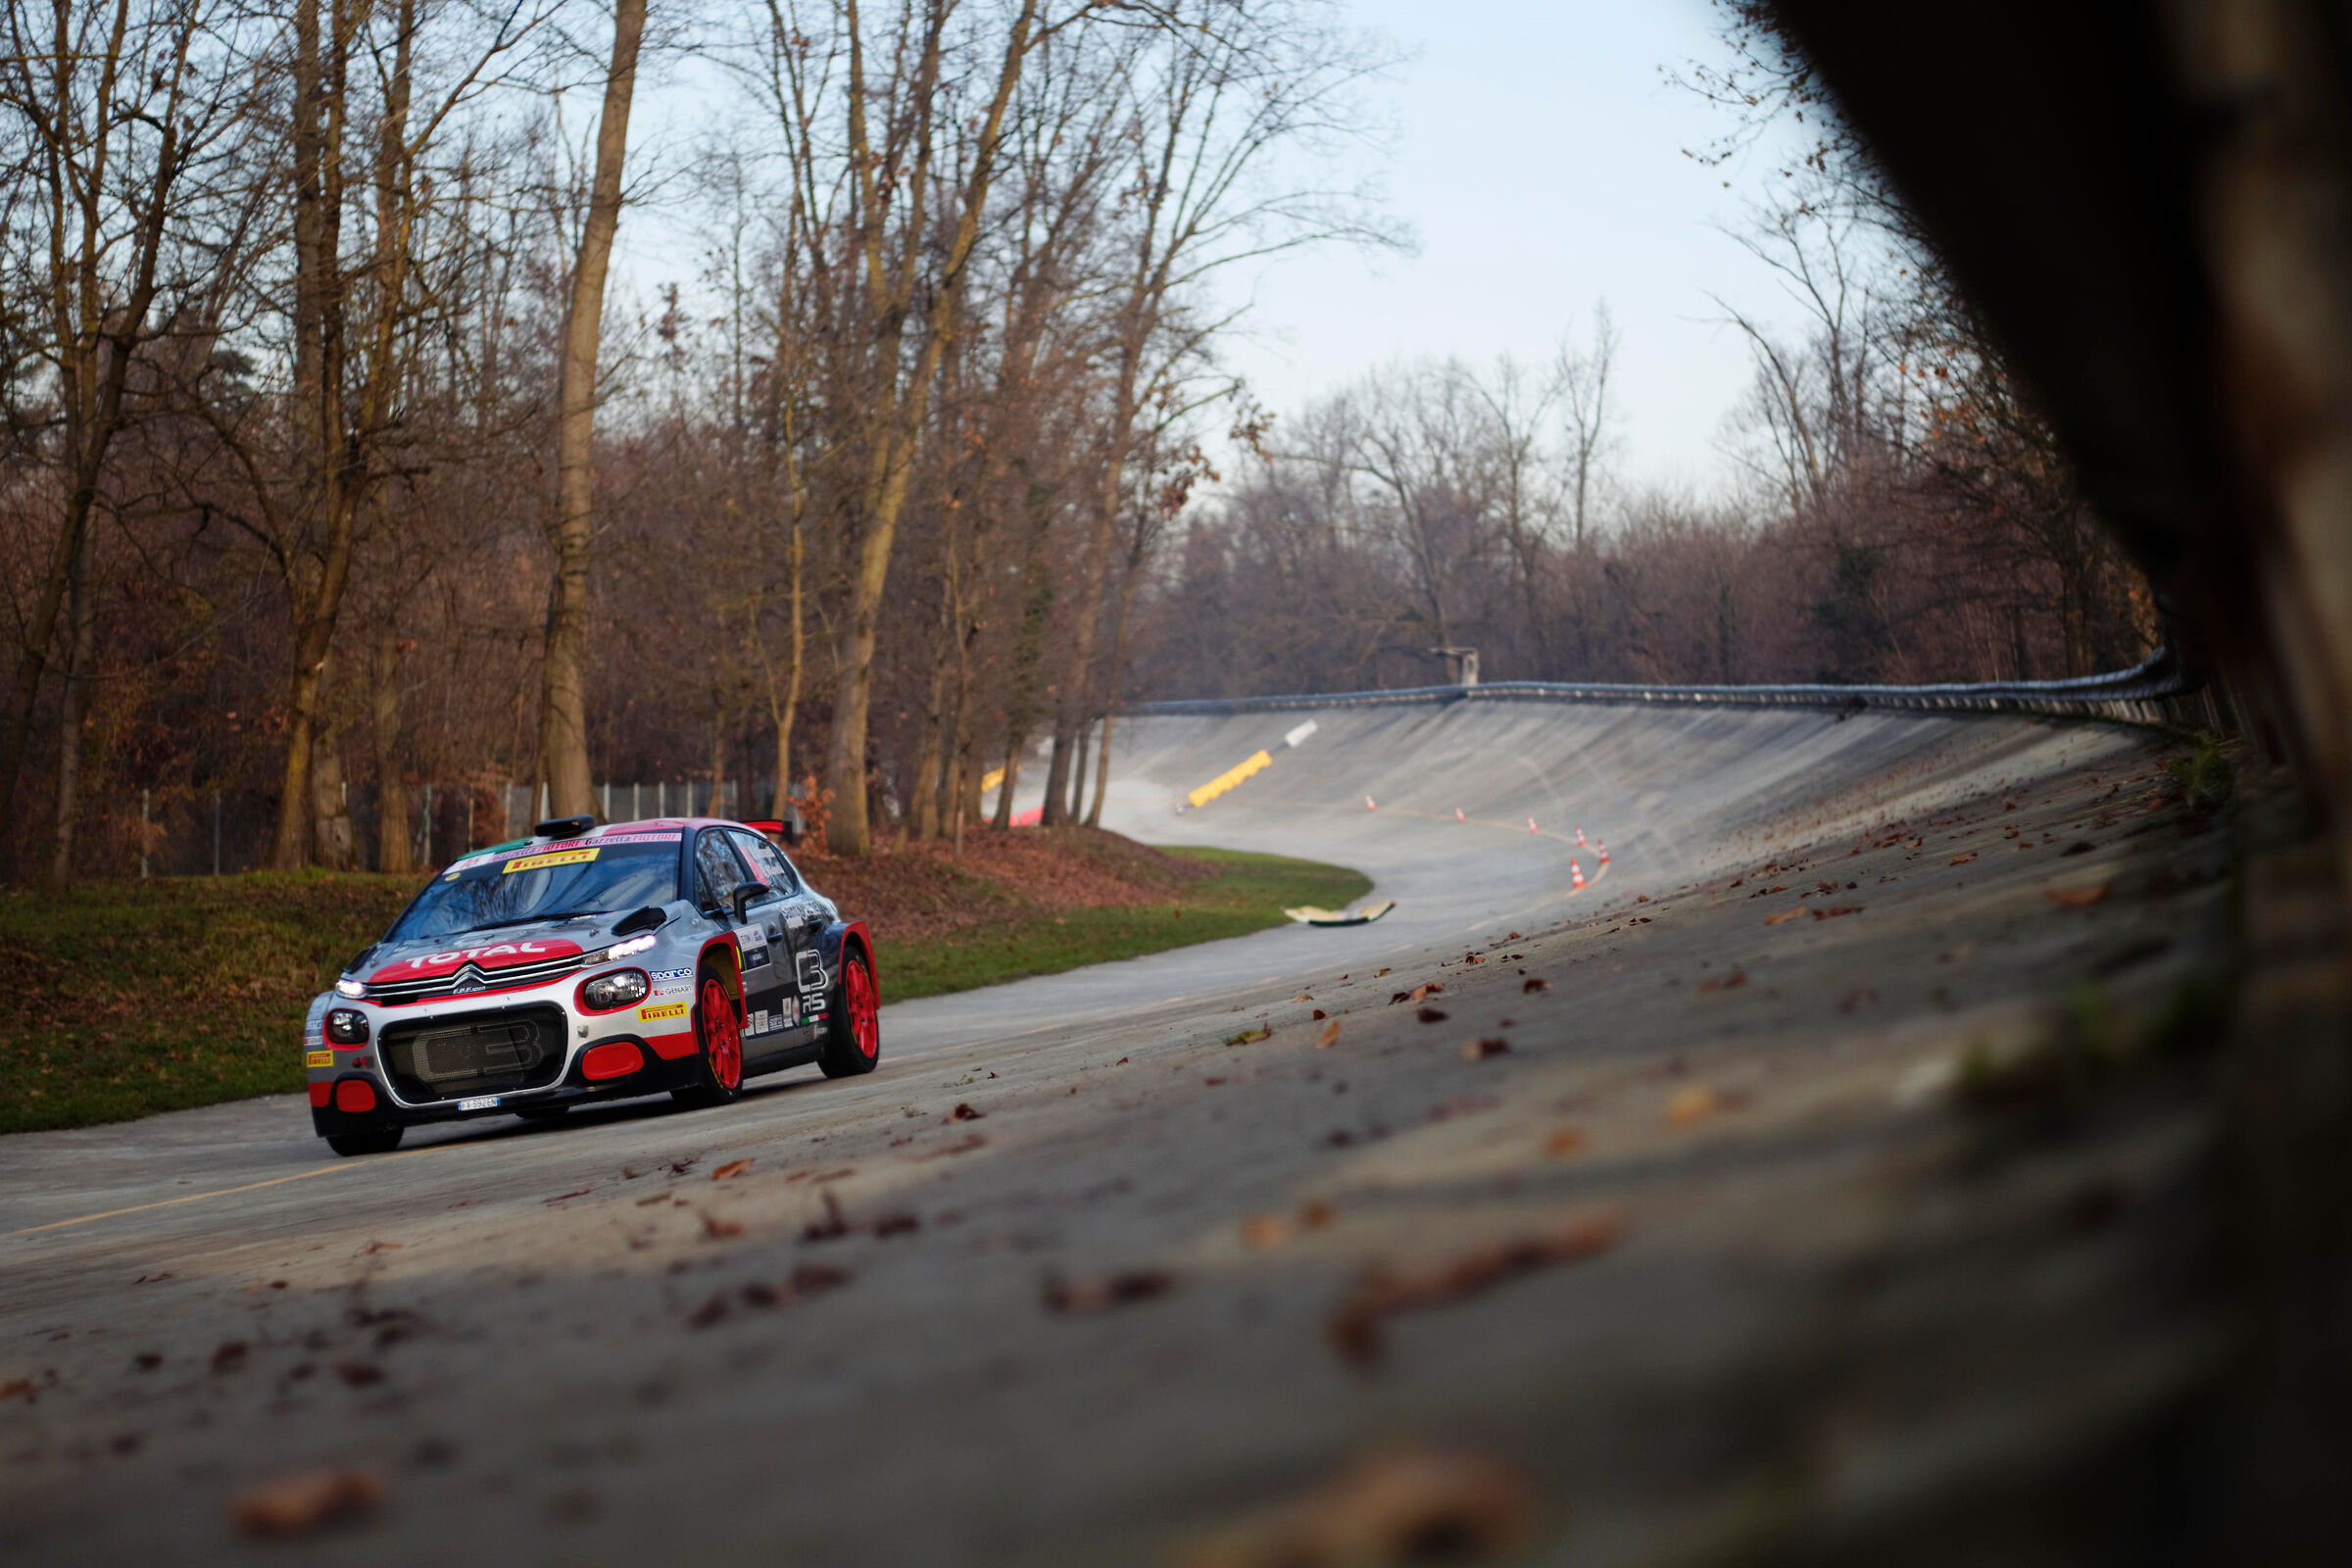 Luca Rossetti at the Monza rally show...